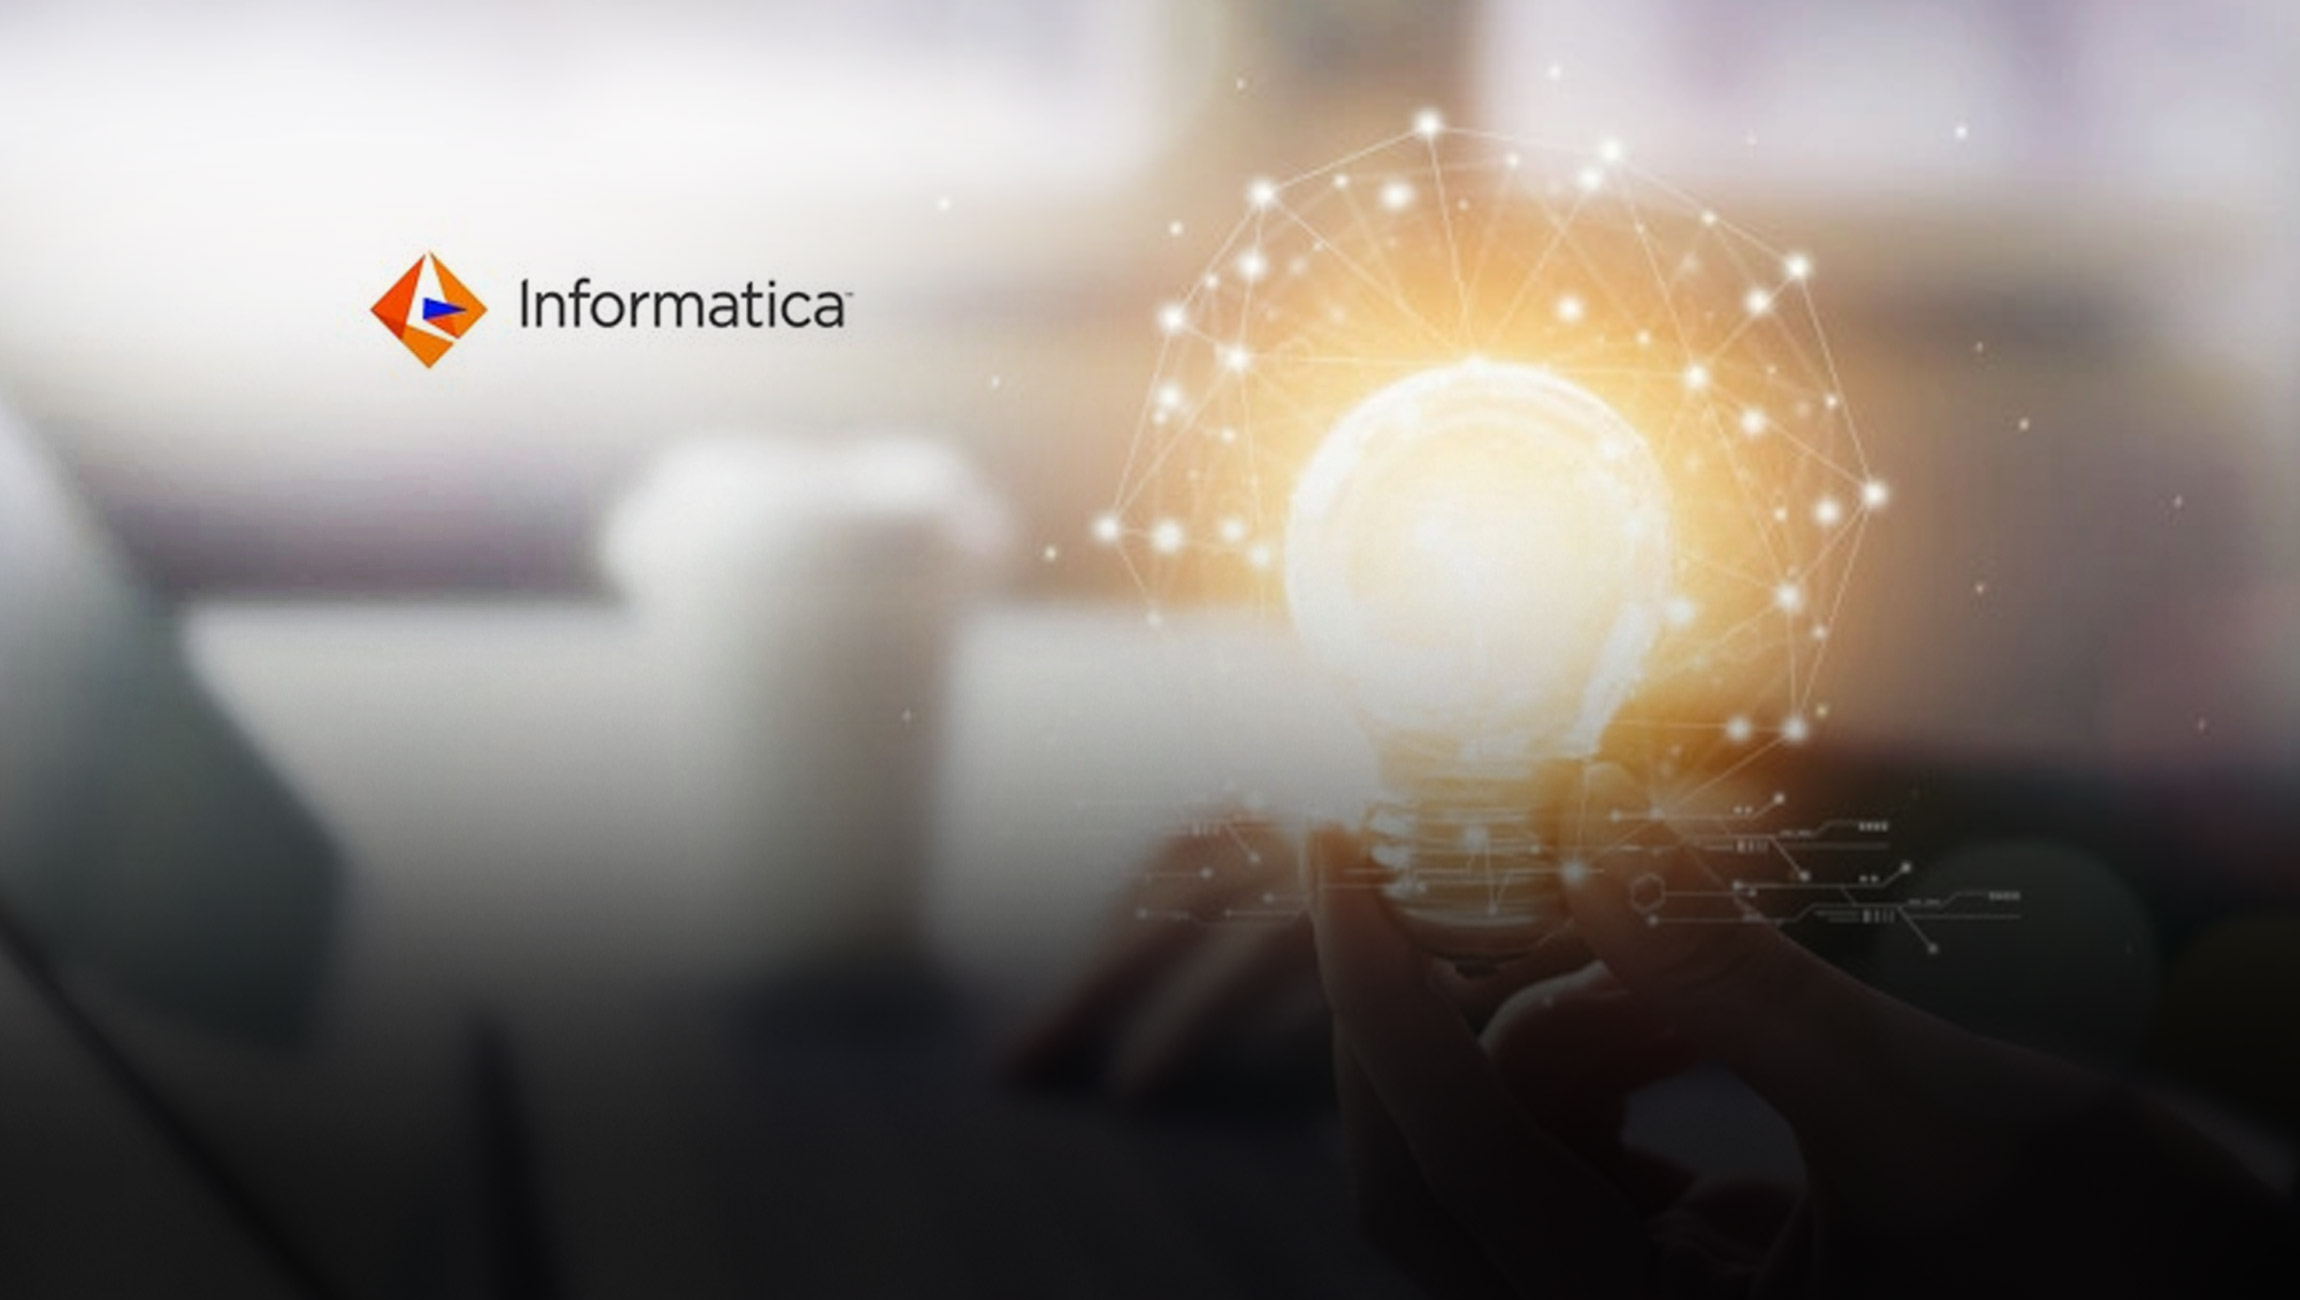 Informatica Named as a Leader for Fifth Year in Gartner Magic Quadrant for Metadata Management Solutions